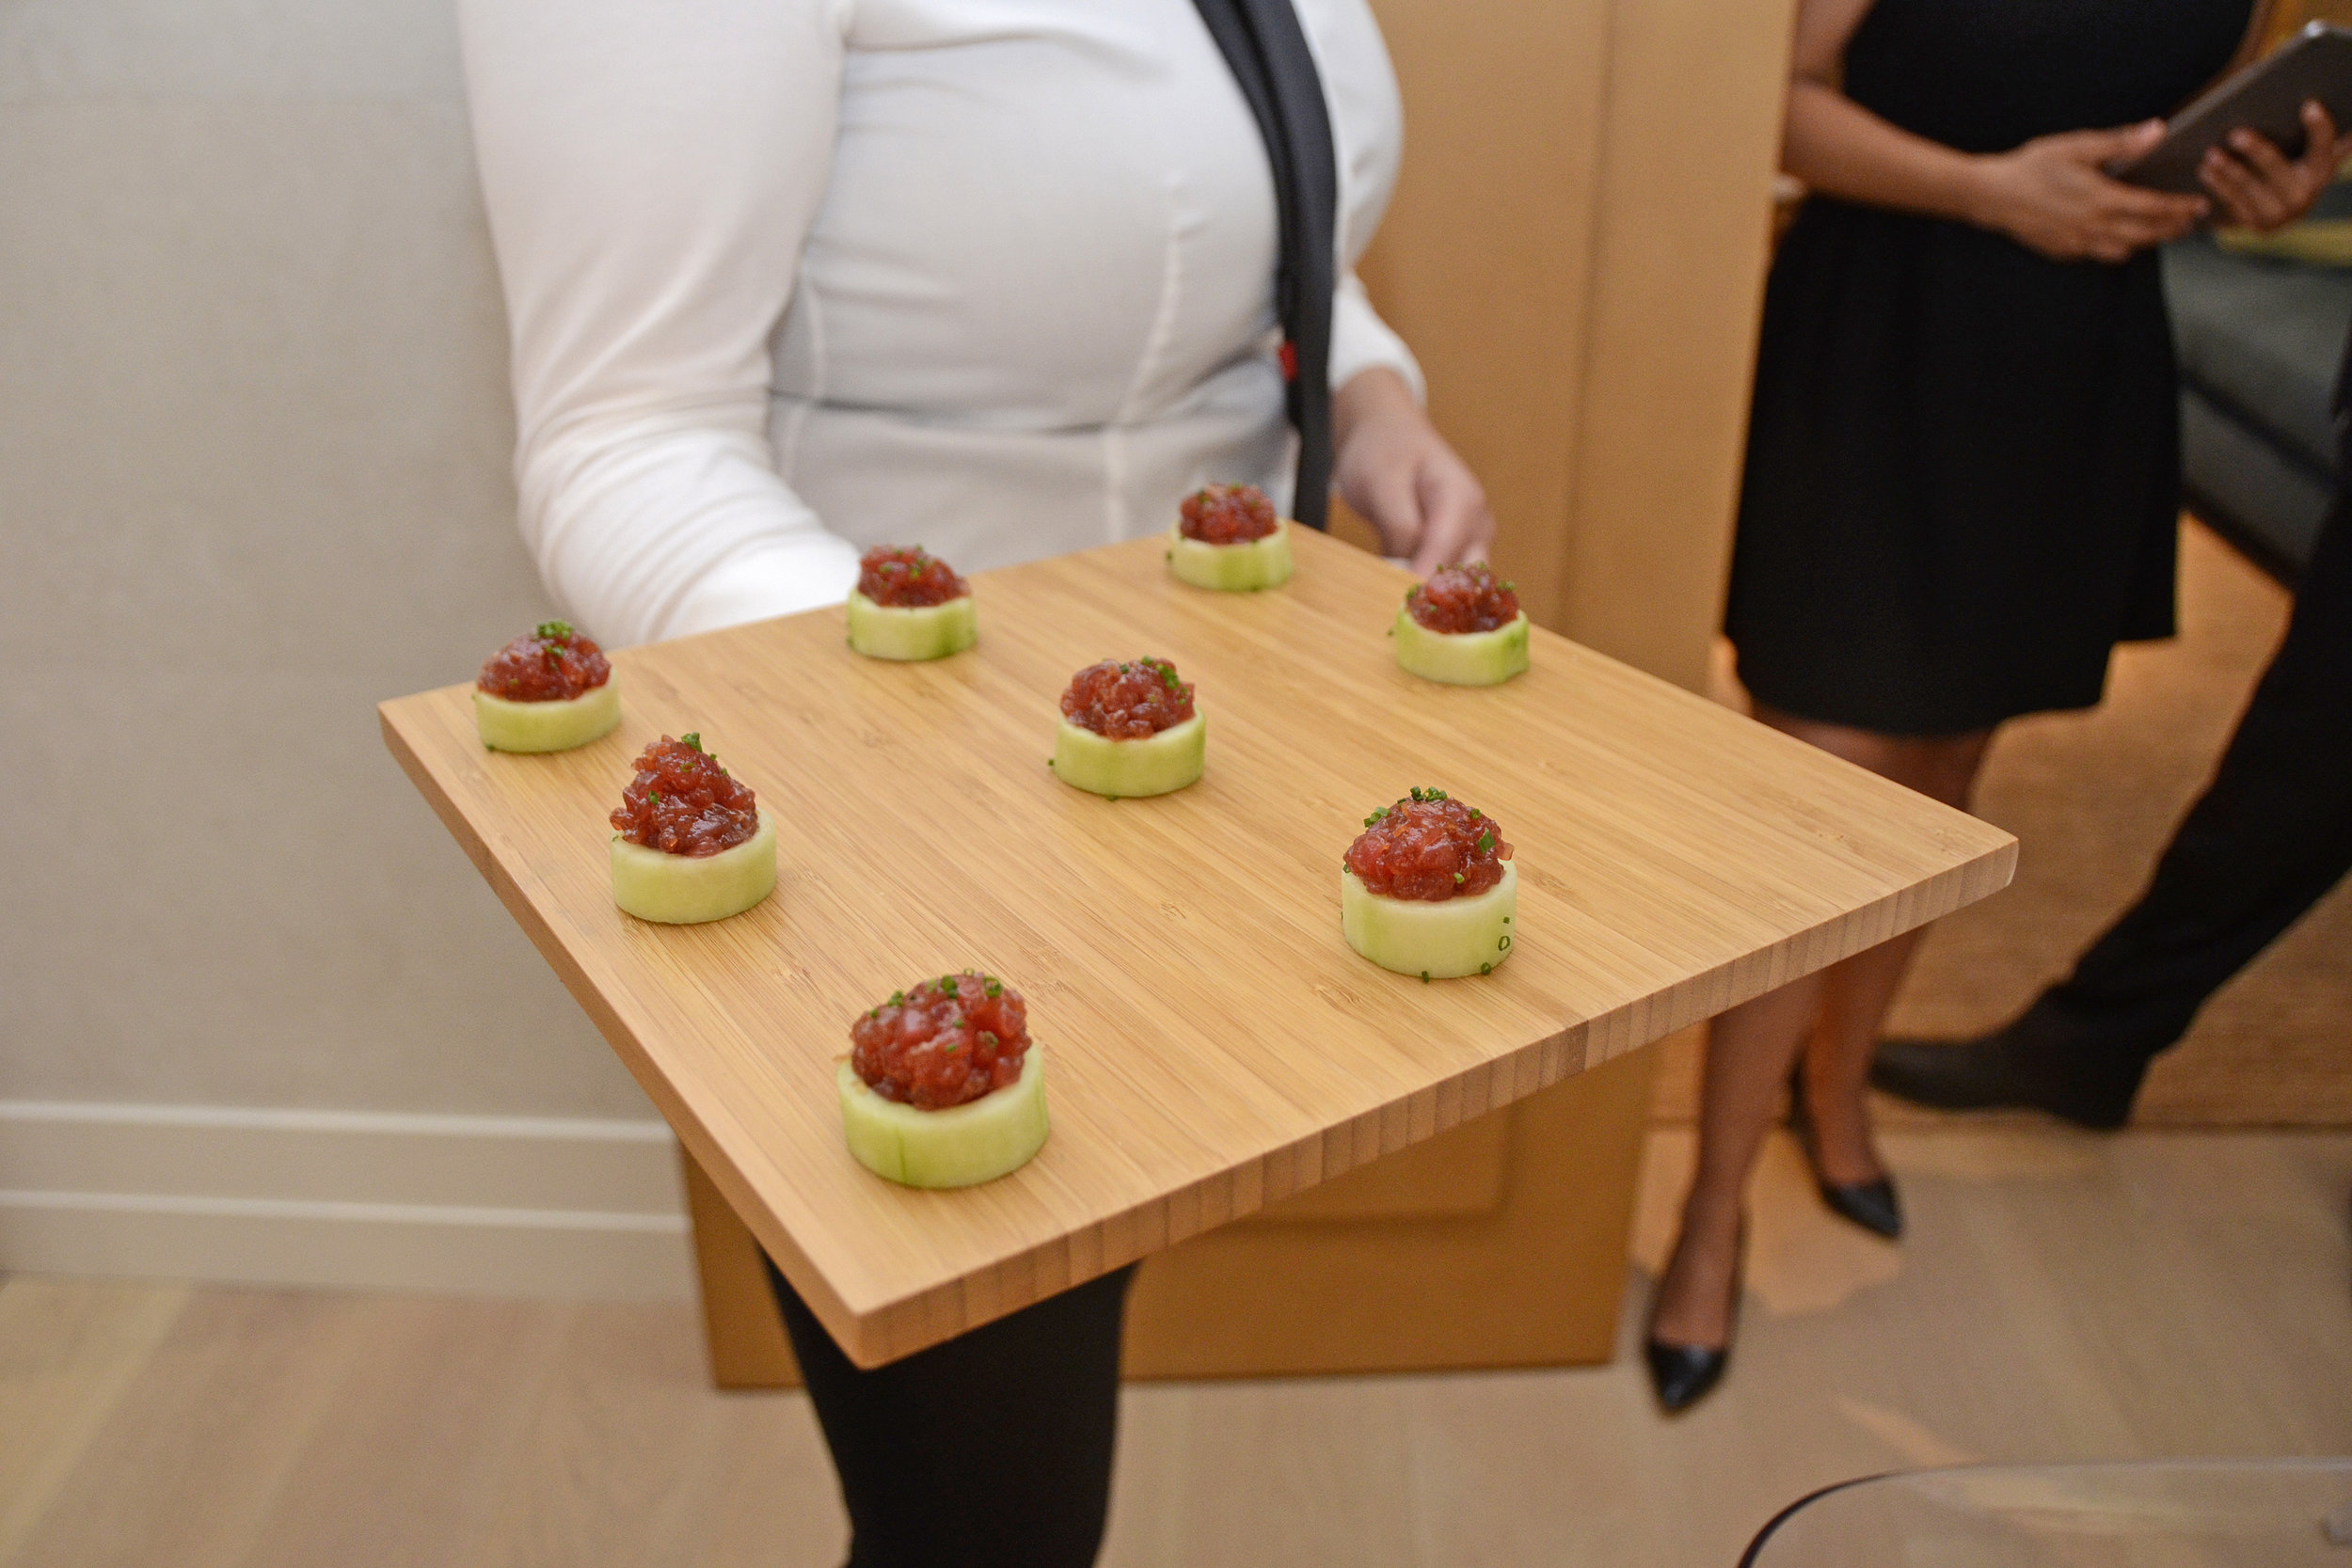 Fresh bite-sized tuna tartare served in cucumber cups. Credit: Lukas Greyson